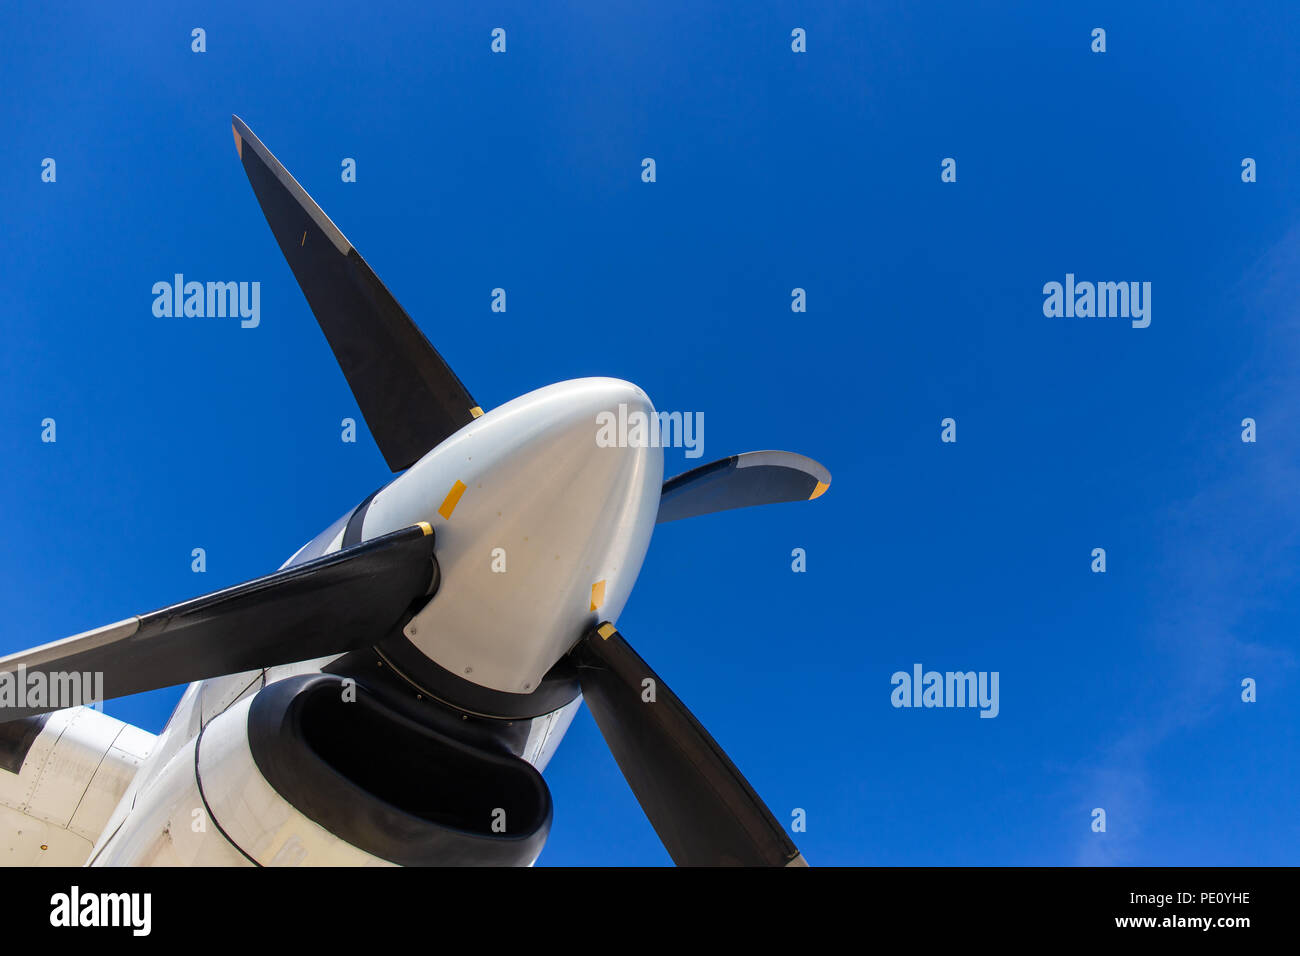 bottom view of aircraft propeller blade and turboprop engines with blue sky background and copy space - Stock Image